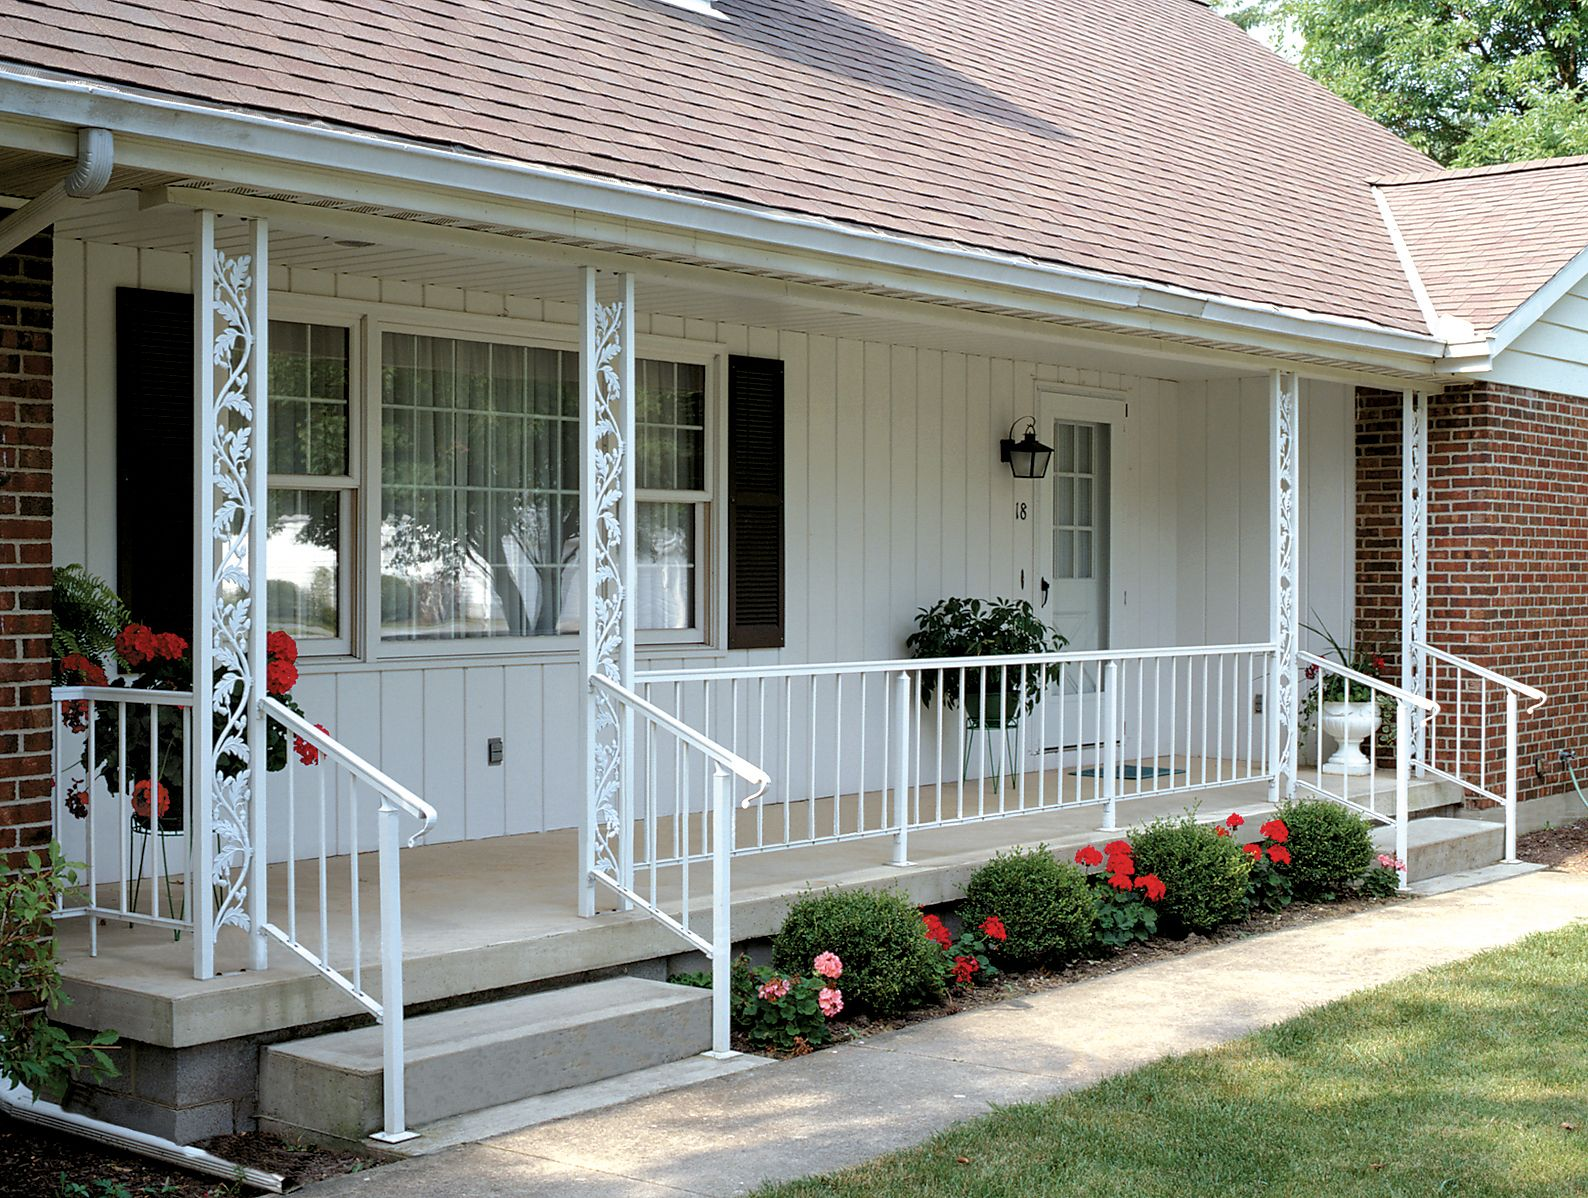 Residential Railing On A Front Porch With Decorative Columns Porch Columns Front Porch Columns Wrought Iron Porch Railings